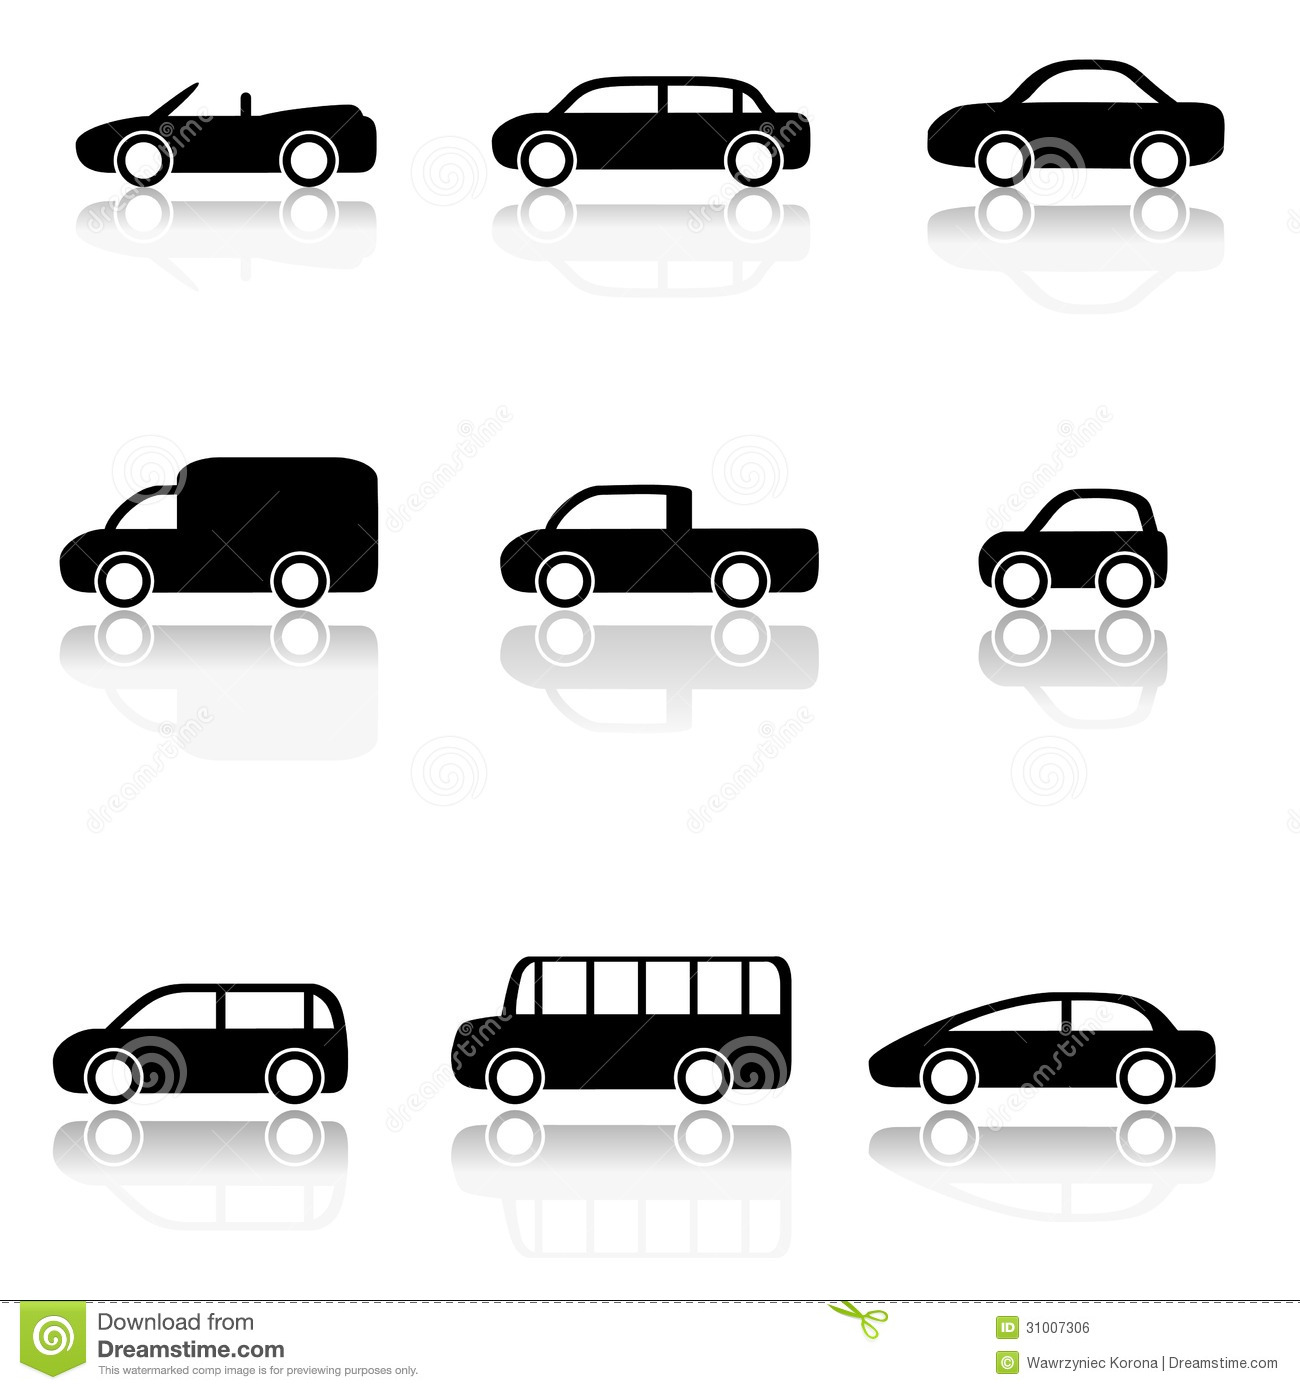 car icons set stock vector illustration of simple isolated 31007306. Black Bedroom Furniture Sets. Home Design Ideas